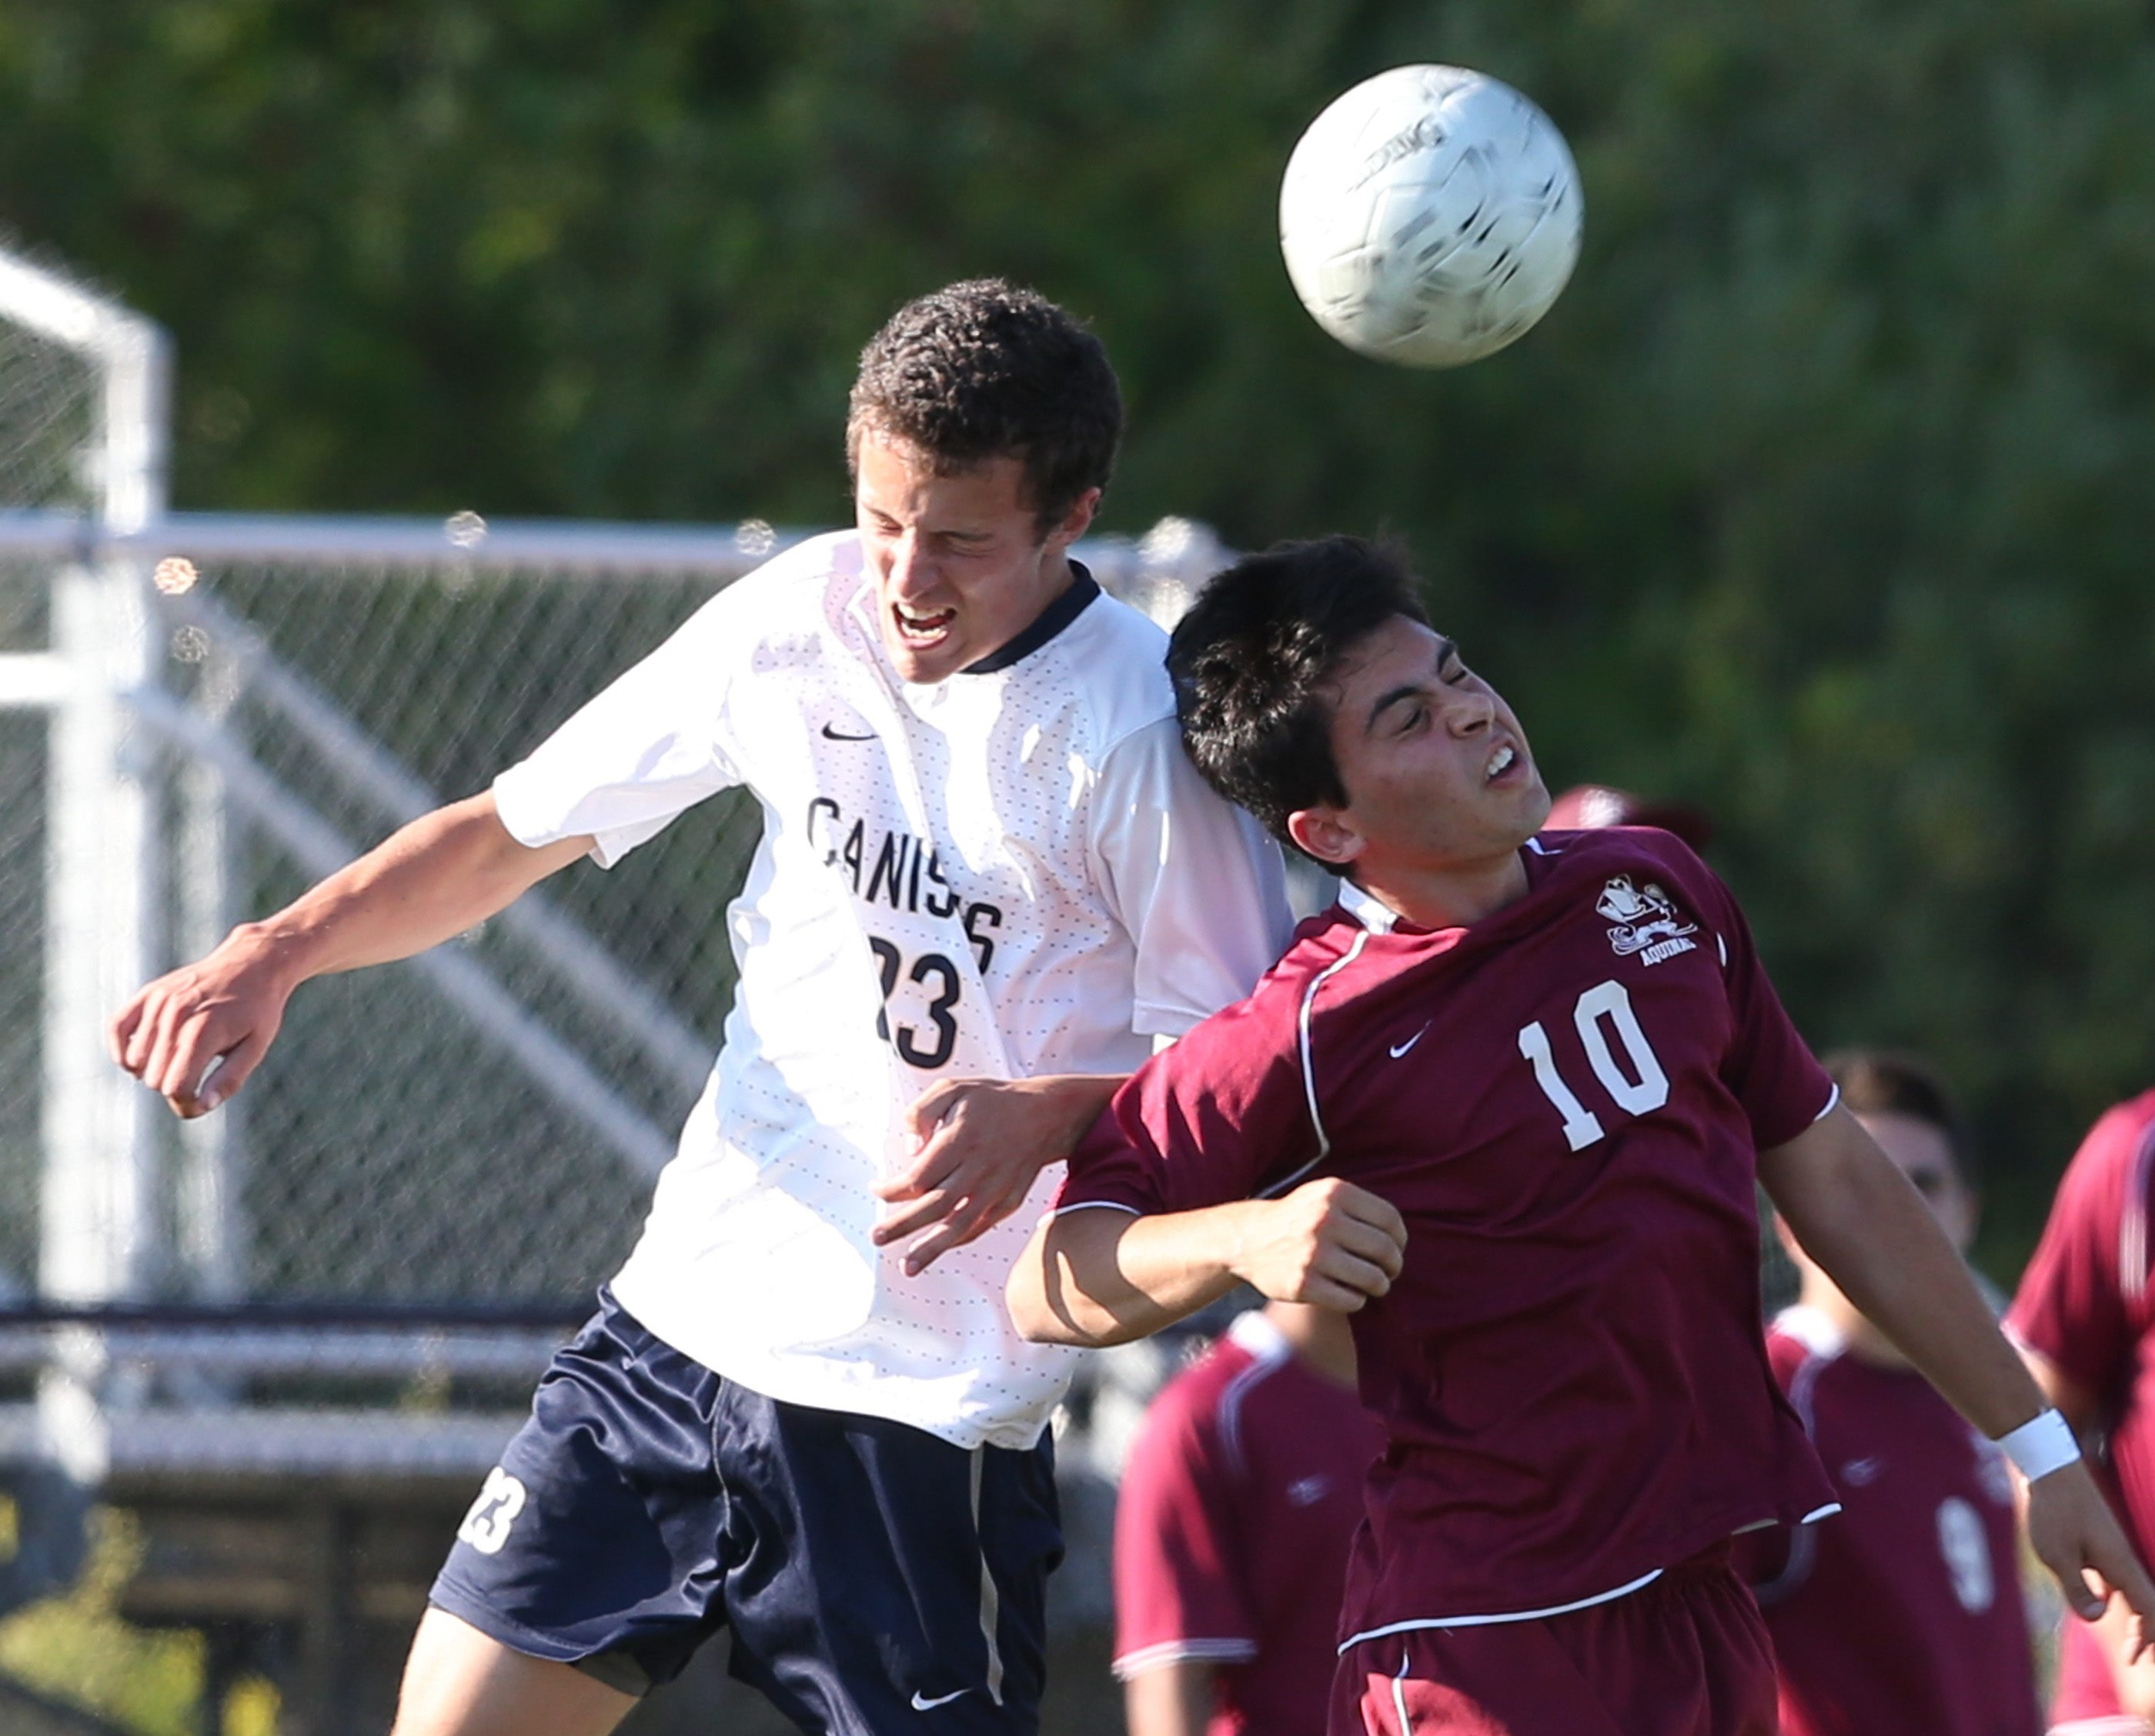 Canisius'  Matthew Burns heads a ball away from Aquinas'  Mike Fuino during the Crusaders' season-opening win over the Rochester-area power.